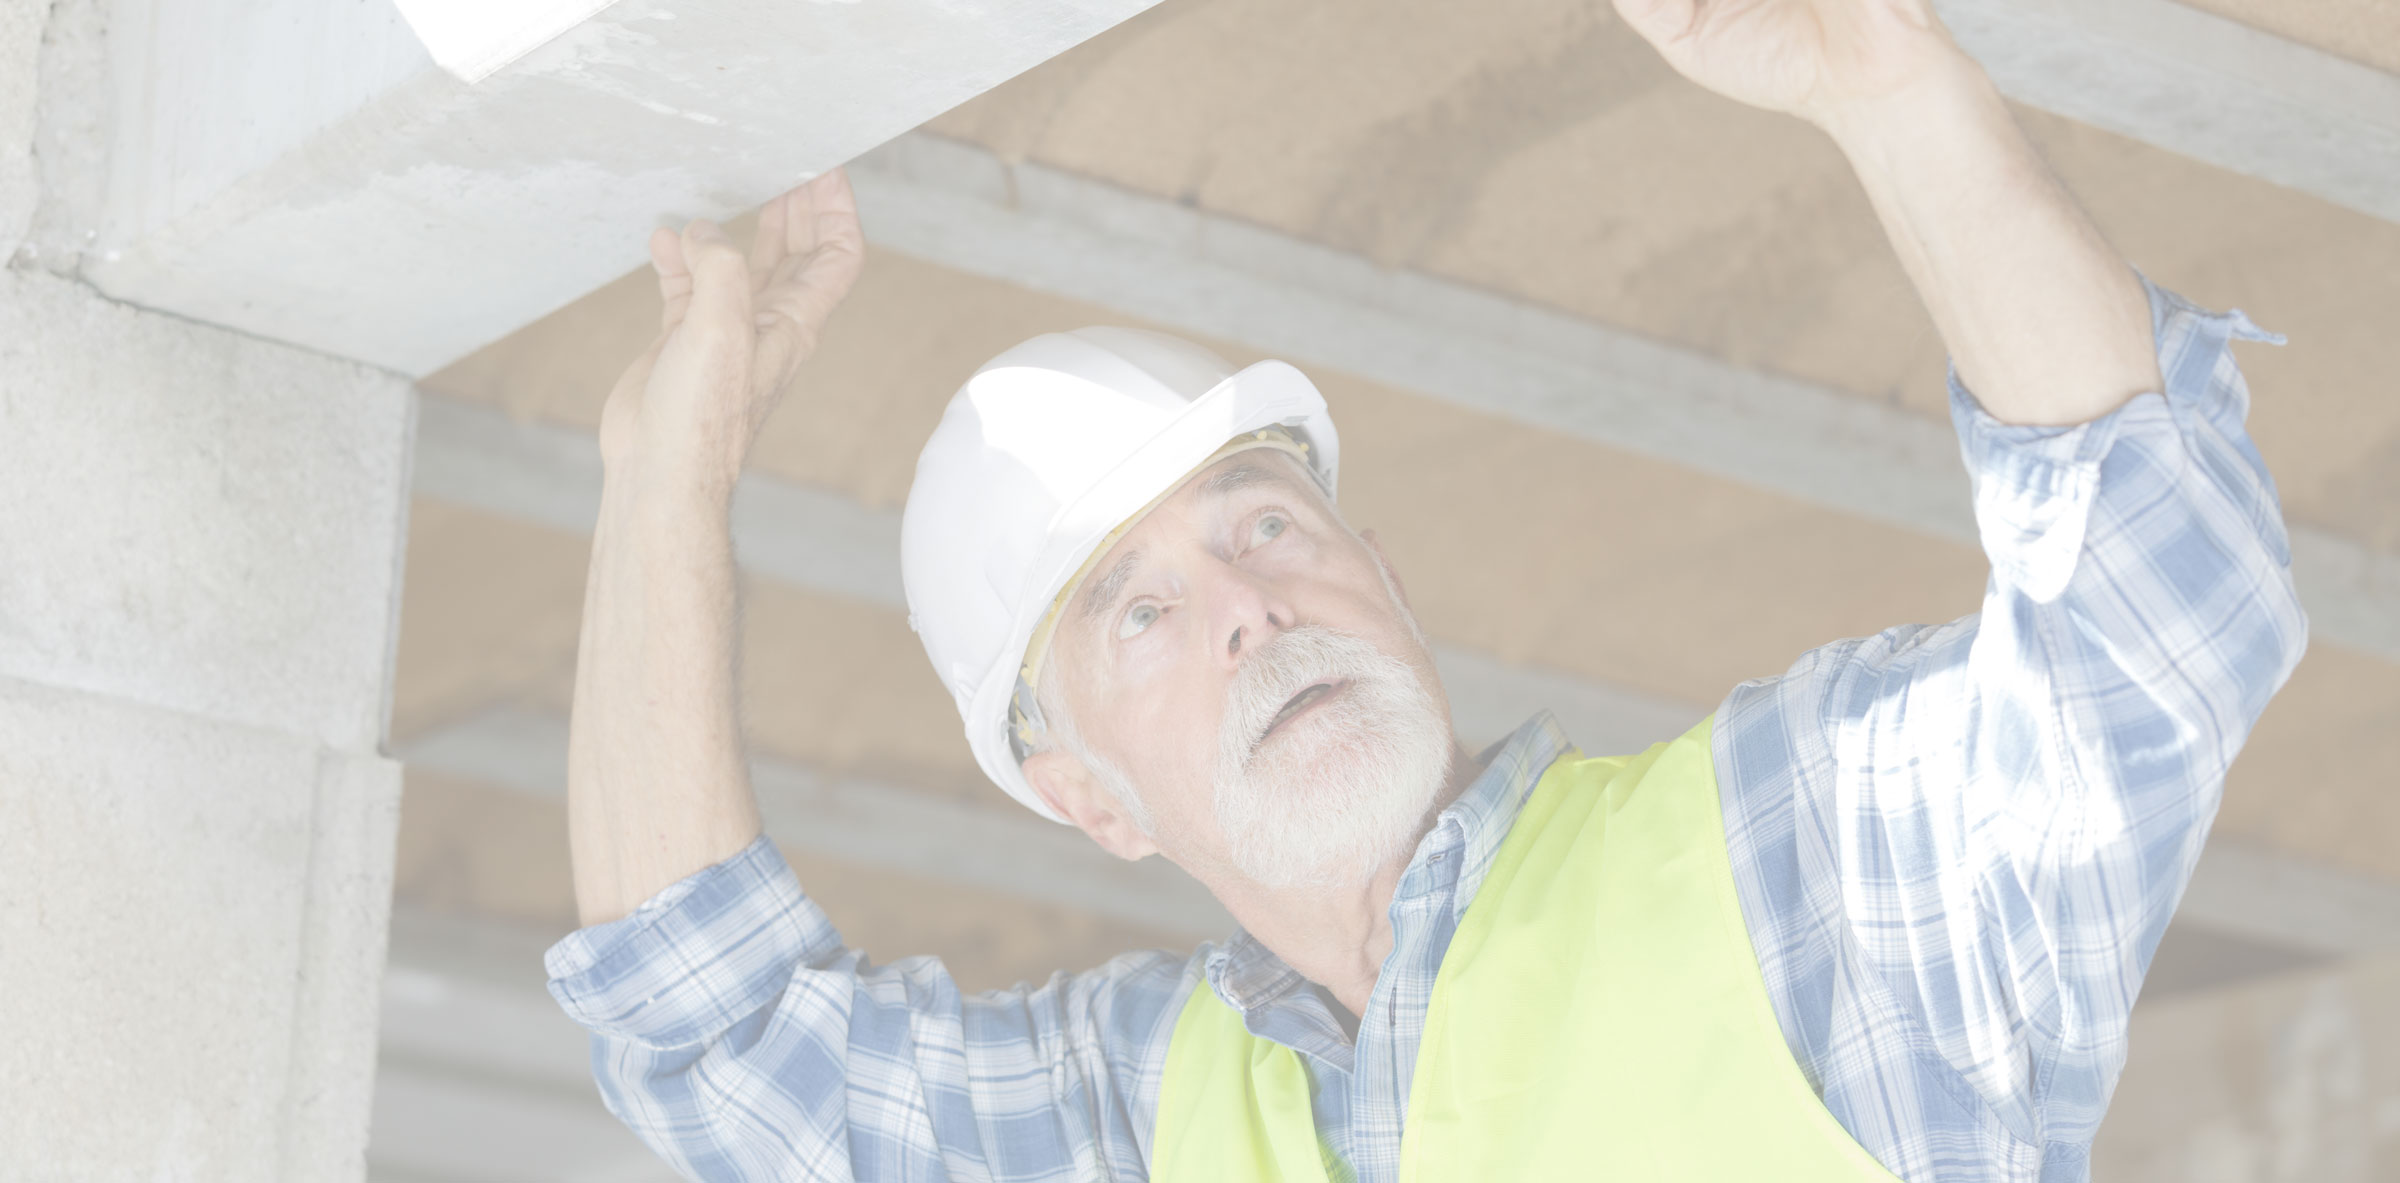 Basic steps to installing a Lintel